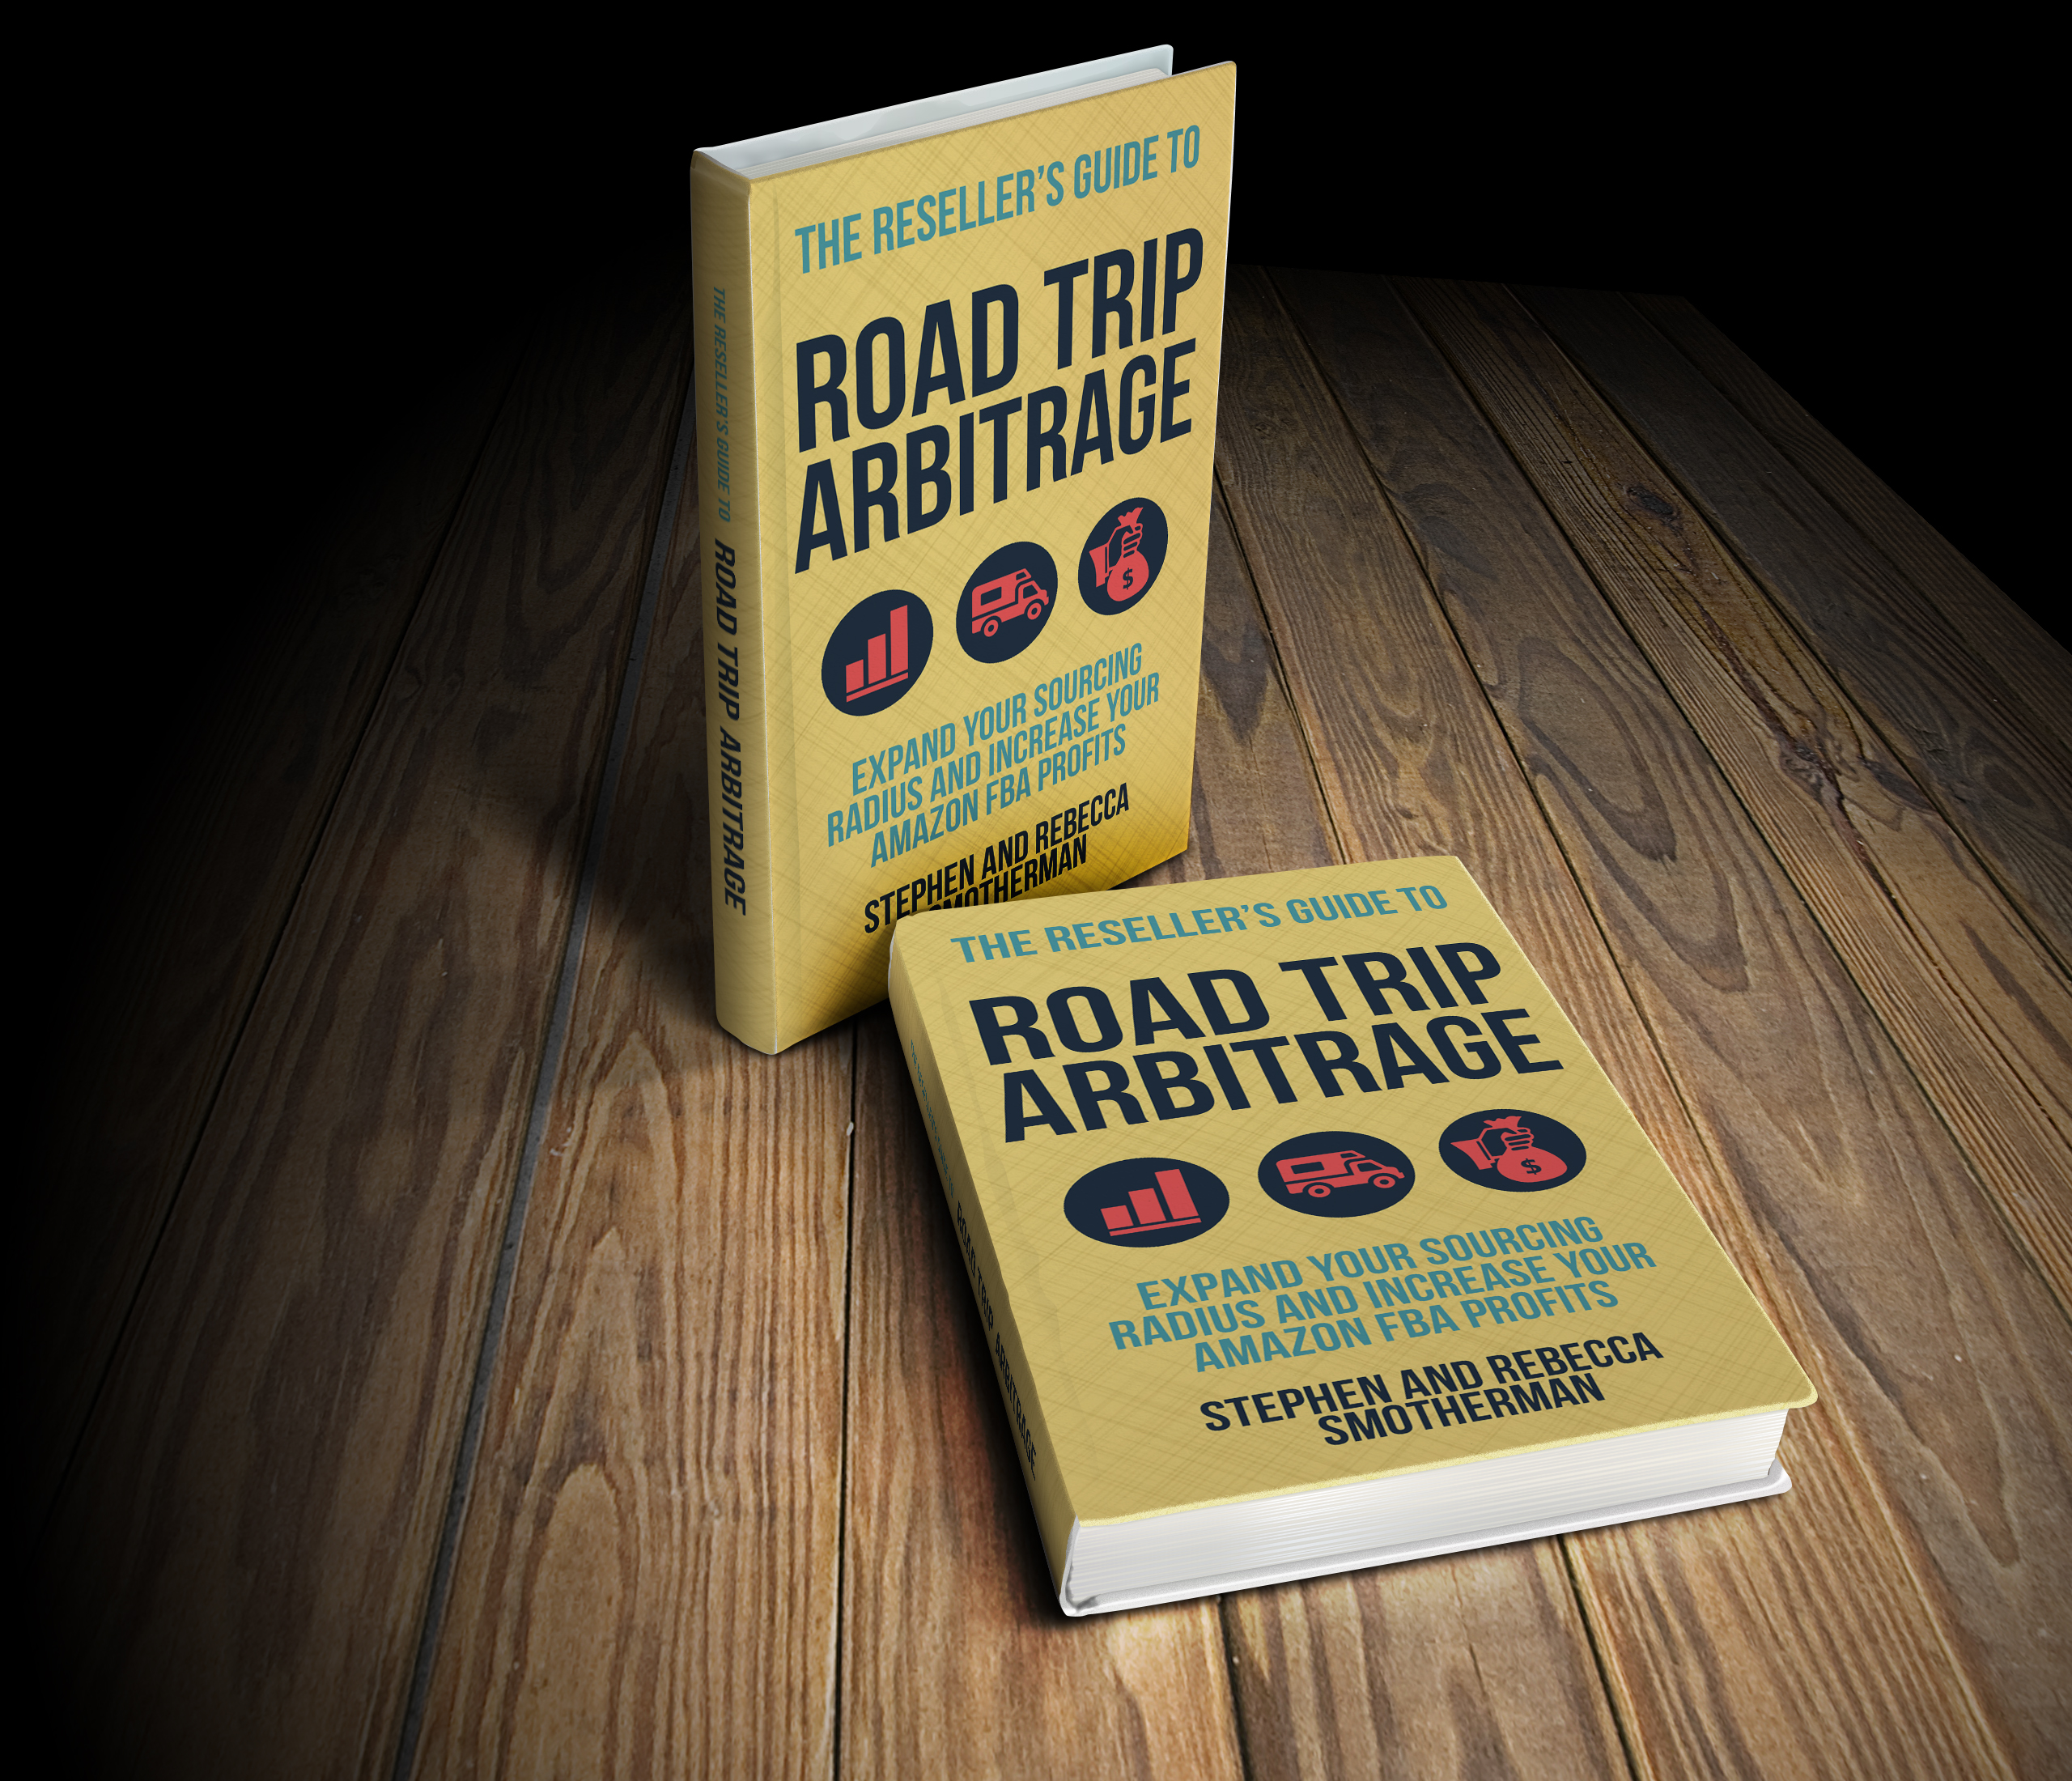 The Reseller's Guide to Road Trip Arbitrage: Expand your sourcing radius and increase your Amazon FBA profits.